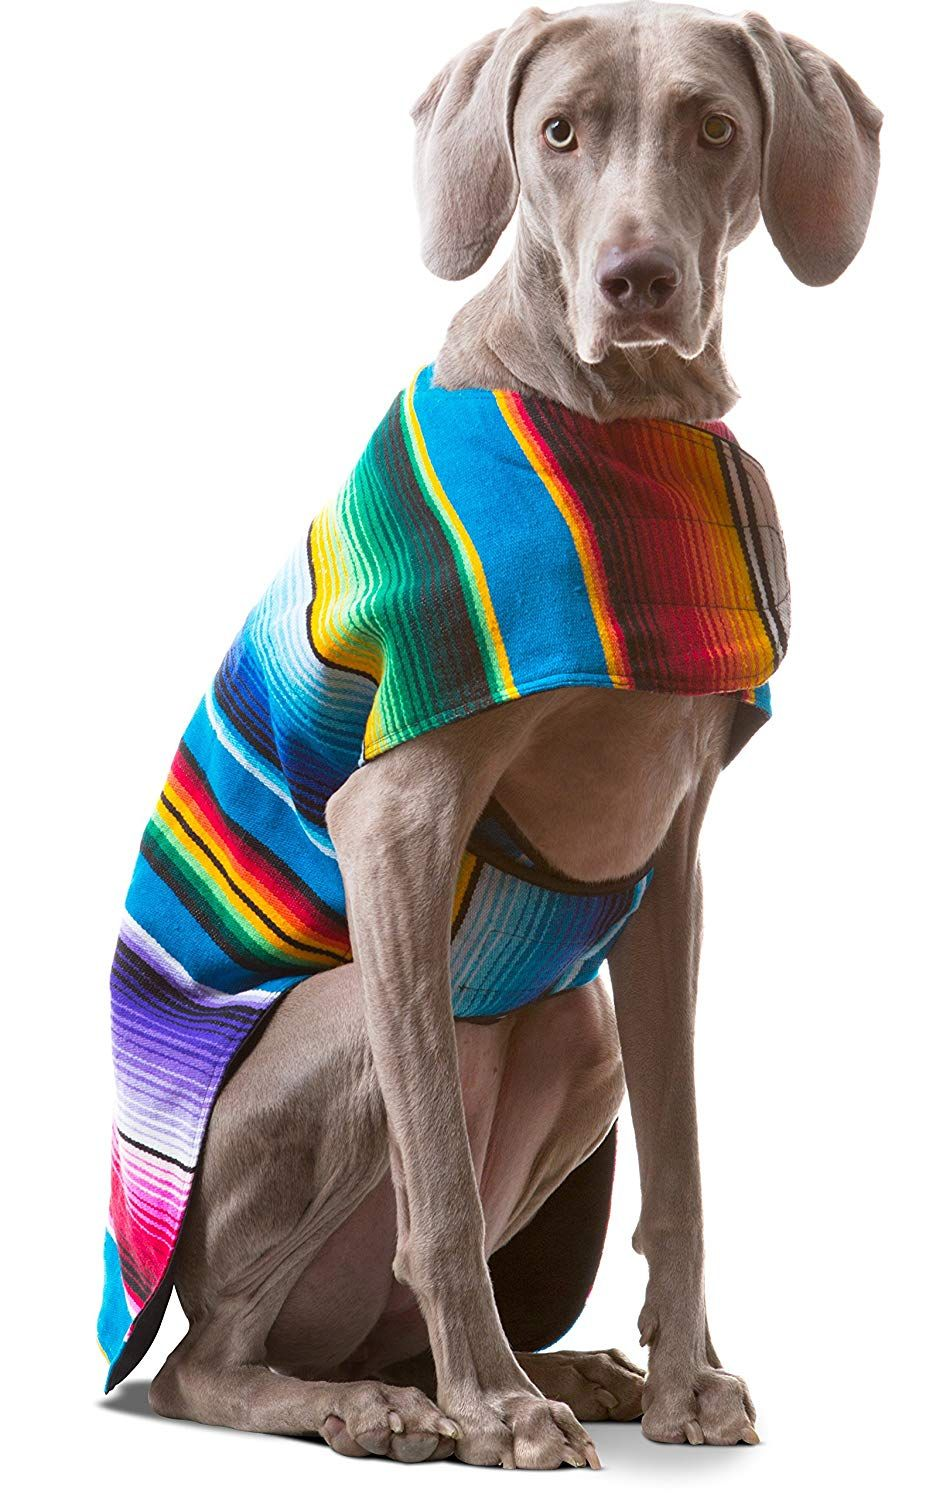 Check out the cute dog clothing.